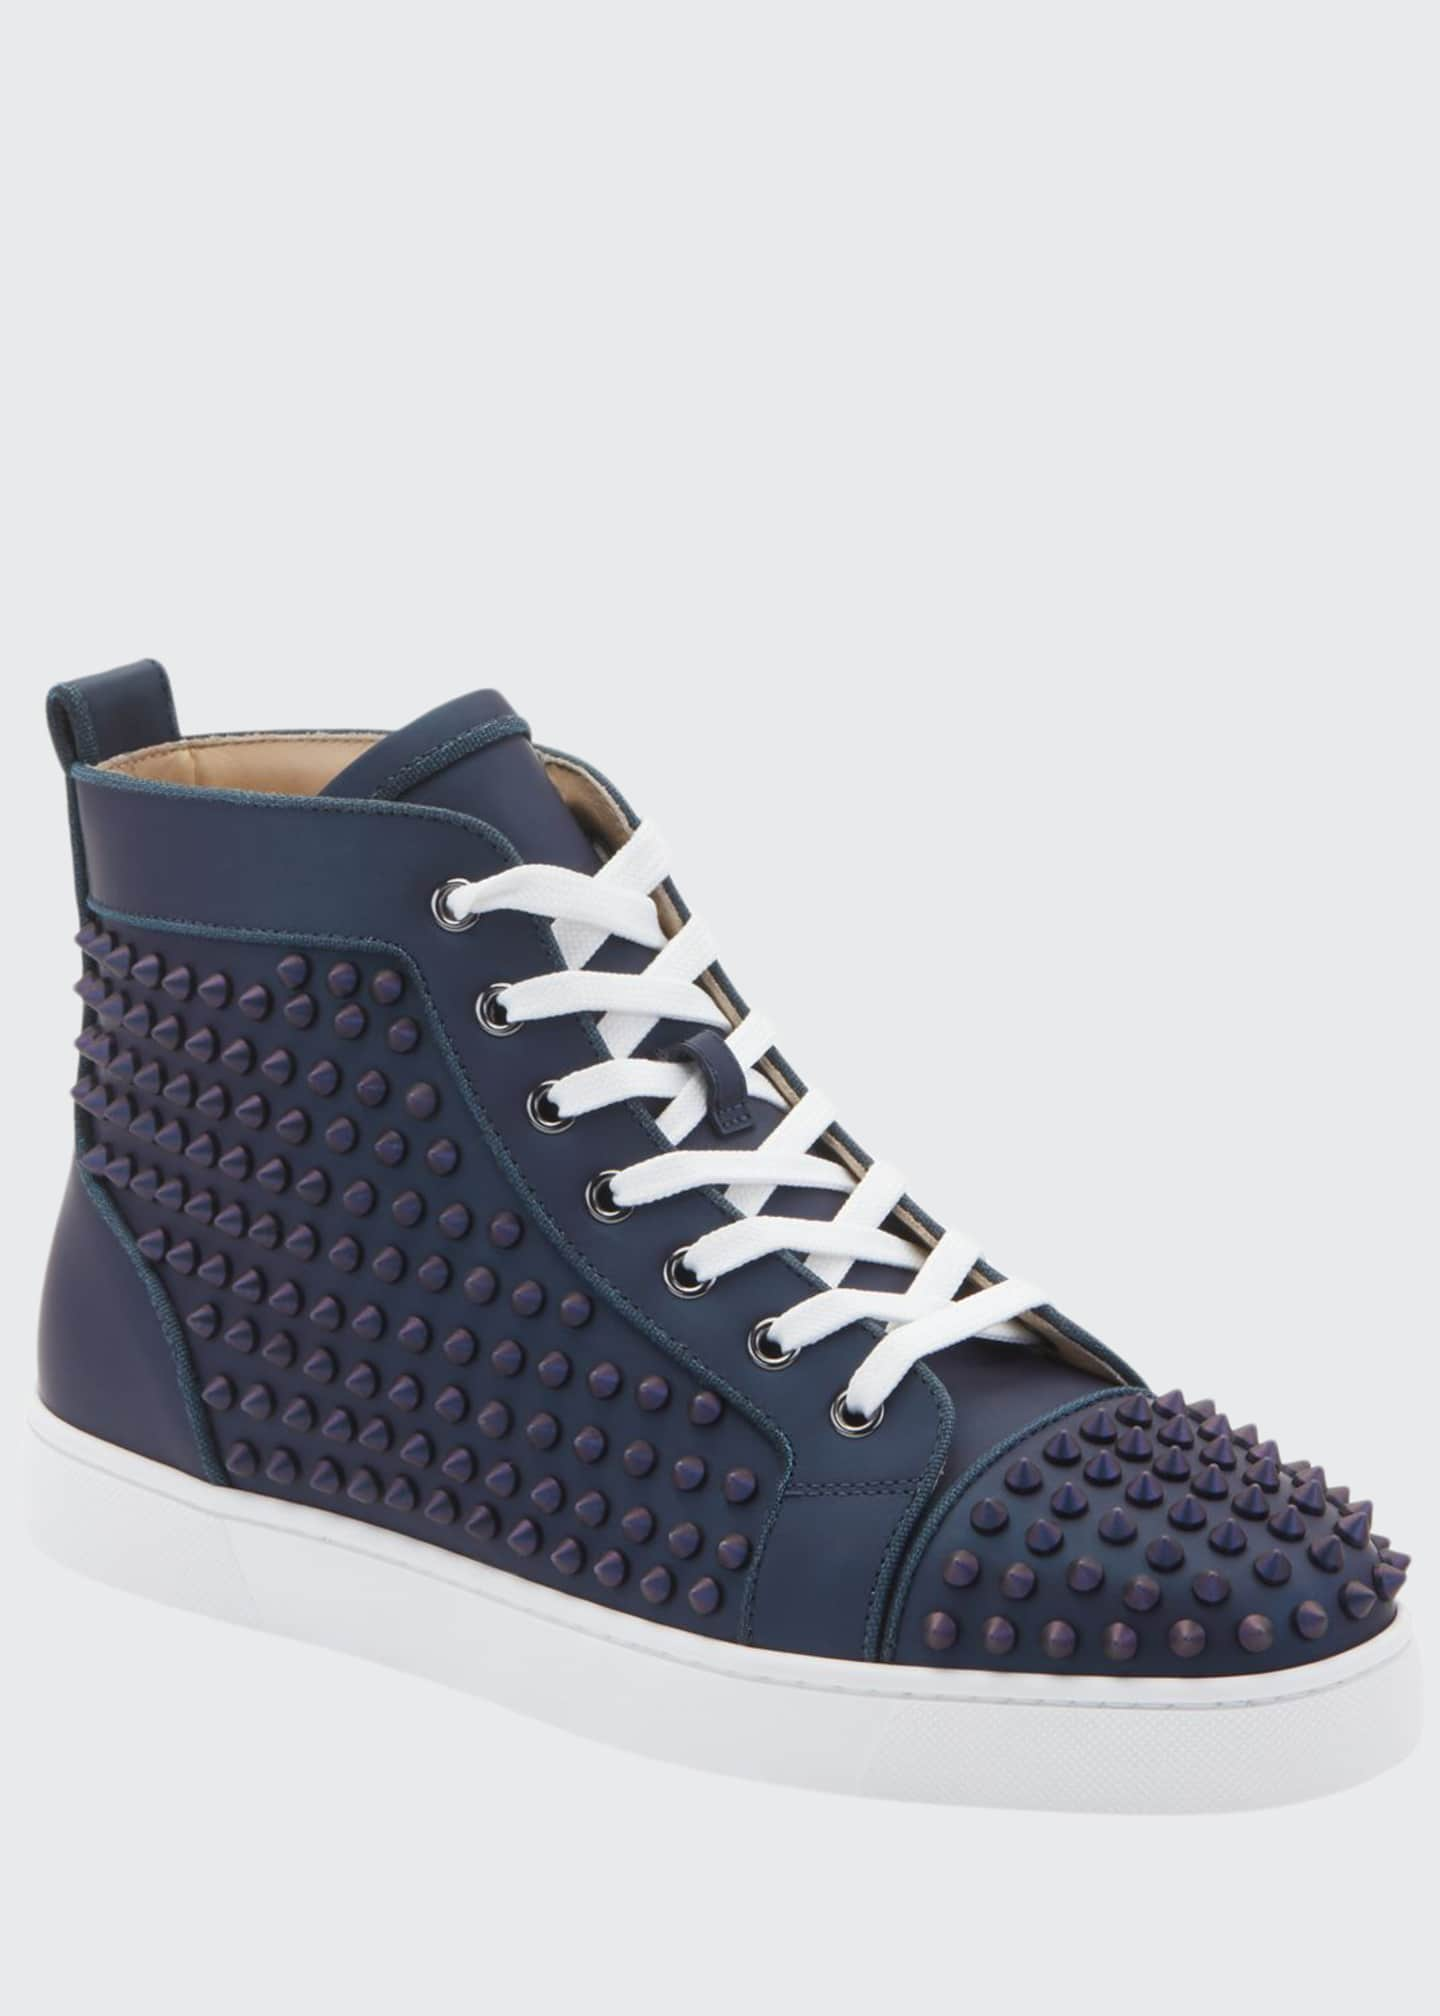 Christian Louboutin Men's Louis Orlato Spiked Leather Sneakers